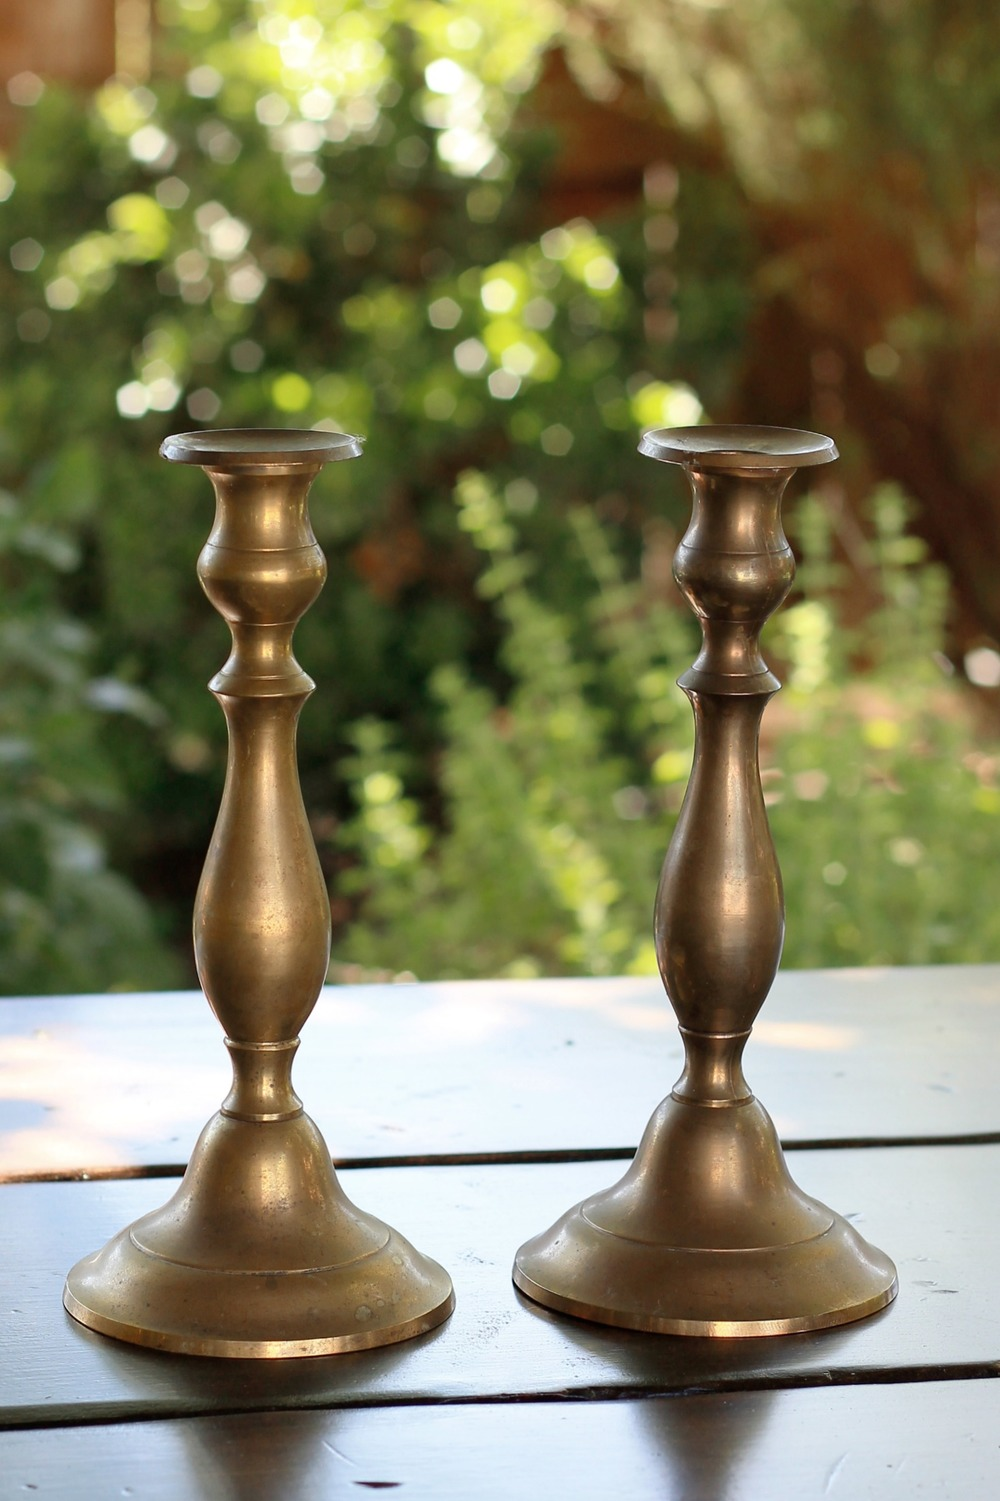 Candlesticks - Tarnished Brass - Niera.jpg